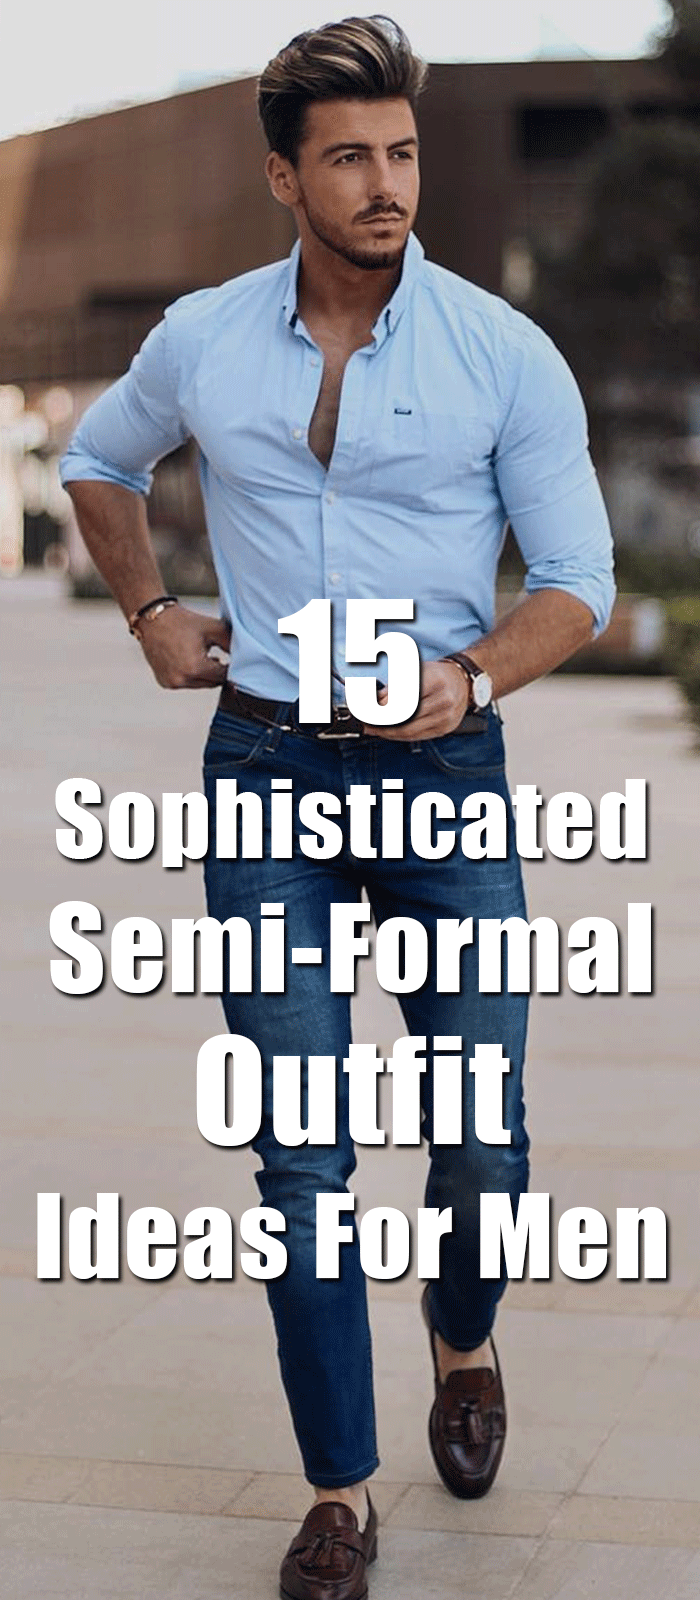 15 Sophisticated SemiFormal Outfit Ideas For Men is part of Semi formal outfits - Here are 15 stylish yet classy semiformal outfits for men to style at every occasion and event  Have a look and change your style!